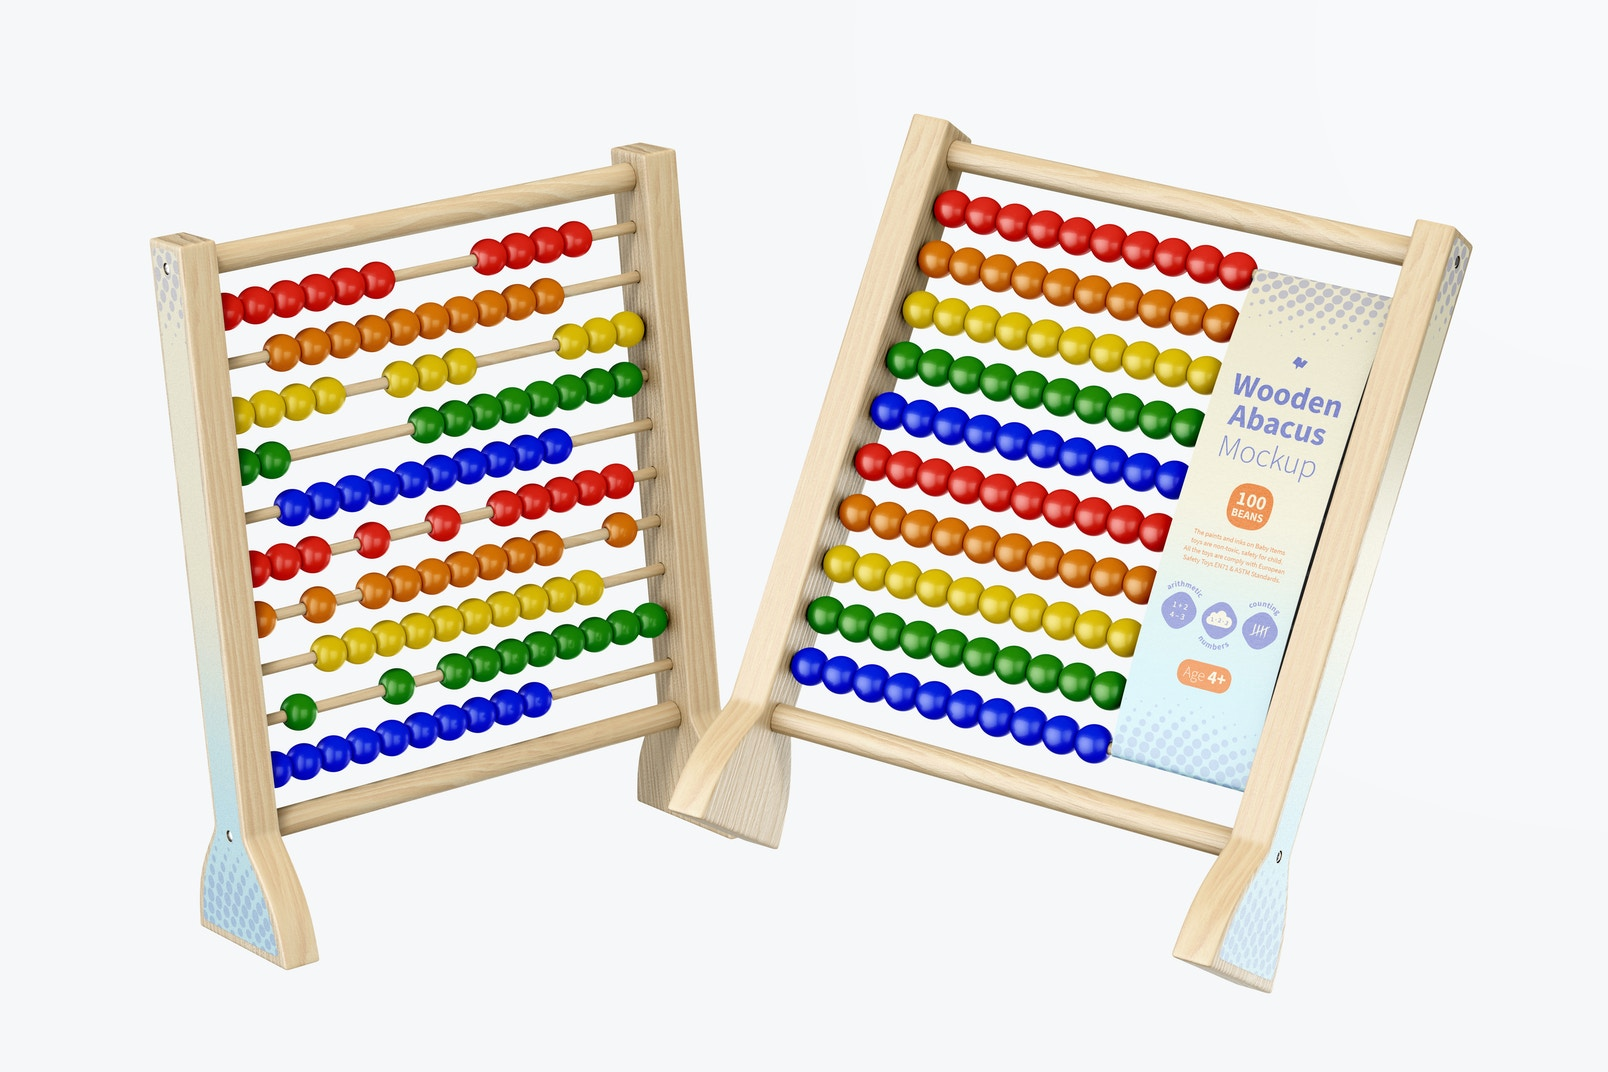 Wooden Abacus Mockup, Floating